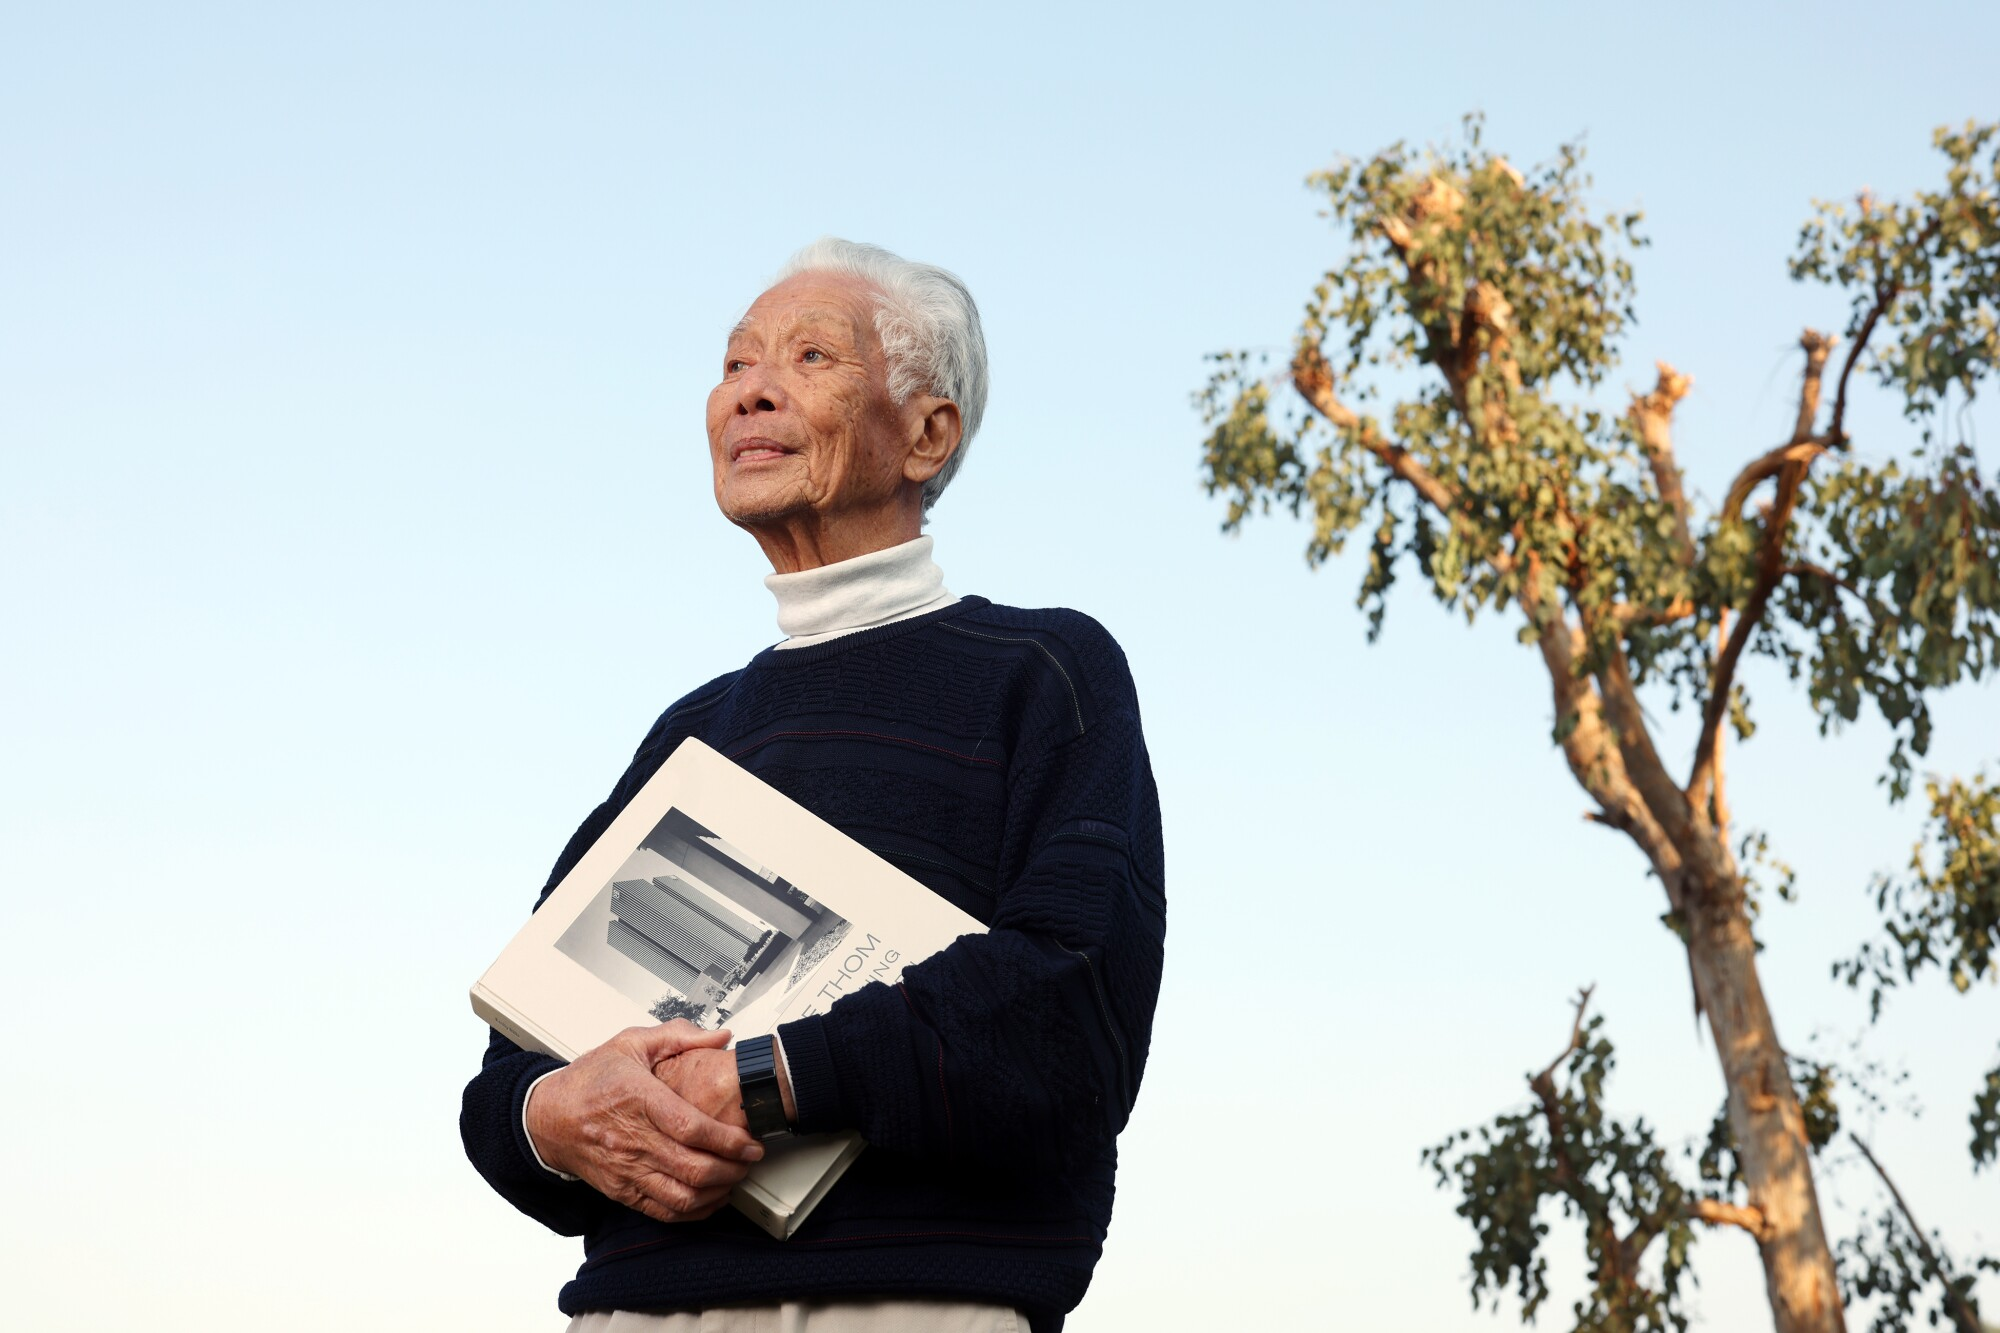 Architecture photographer Wayne Thom, 86, at his home in Rowland Heights.